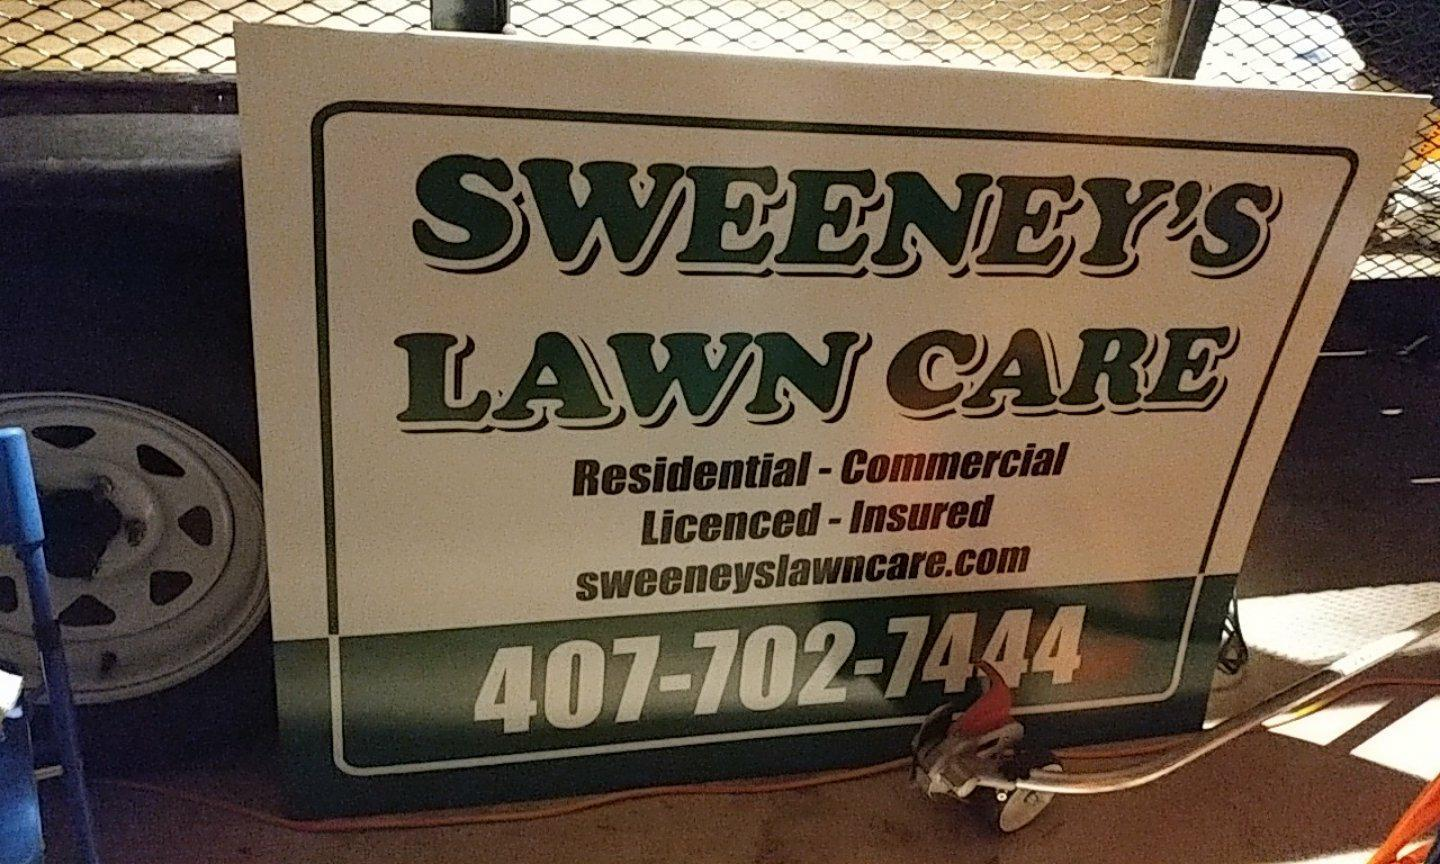 Sweeney's Lawn Care